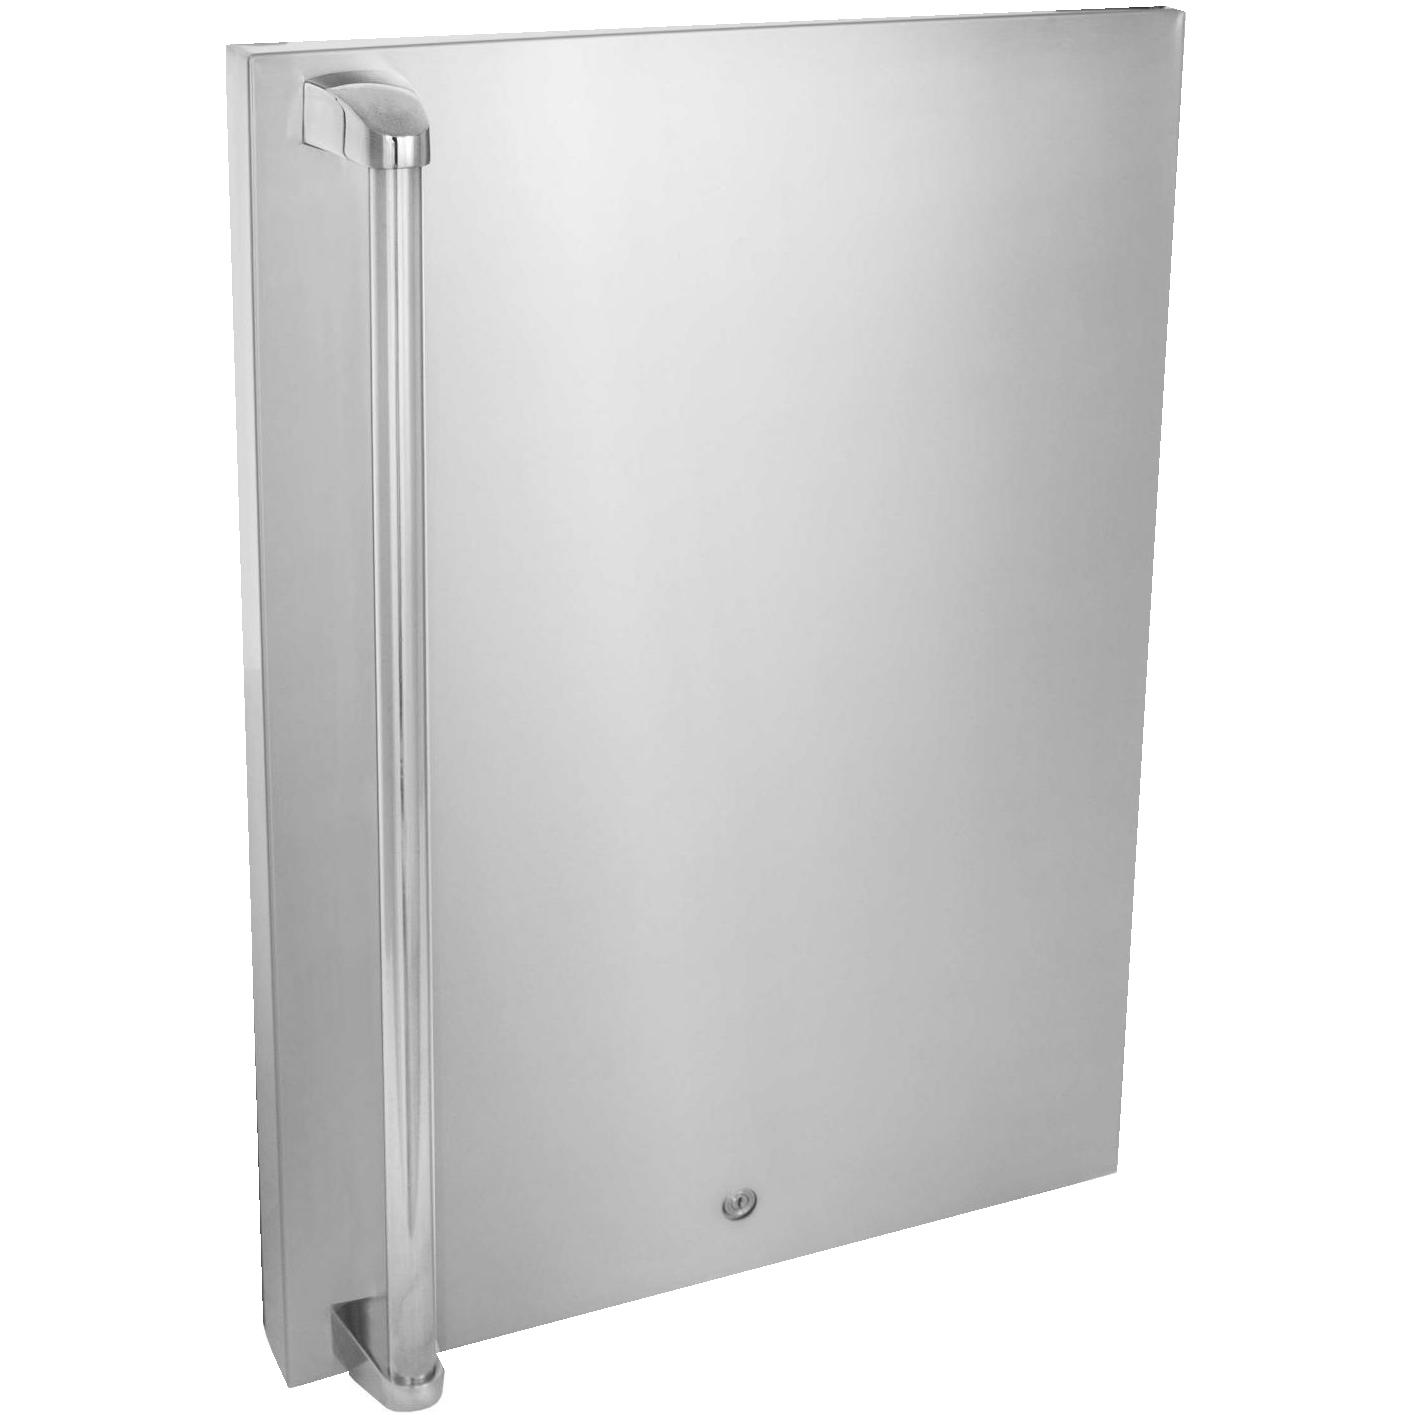 Blaze Outdoor Products Blaze Stainless Door Upgrade For Blaze Bc-130b 4.6 Cu. Ft. Refrigerator at Sears.com